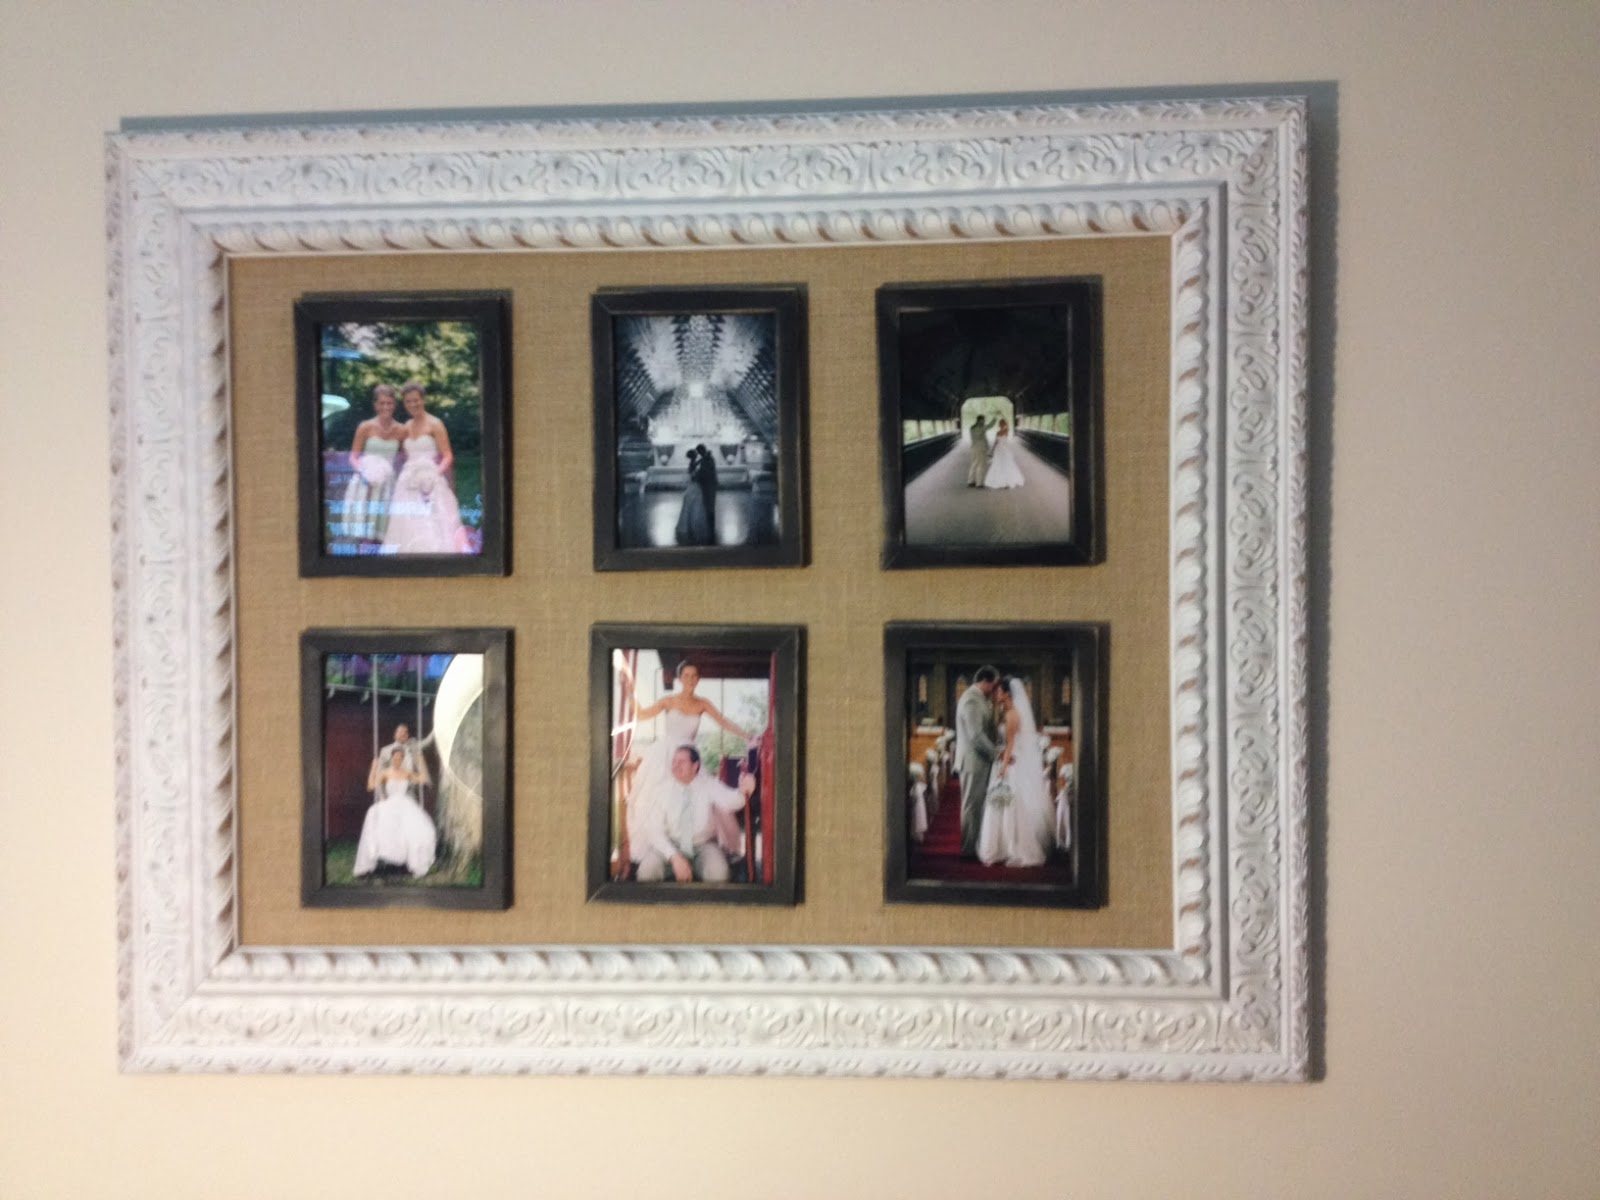 Made in the shade blog diy picture frame inside a picture frame diy picture frame montage jeuxipadfo Gallery